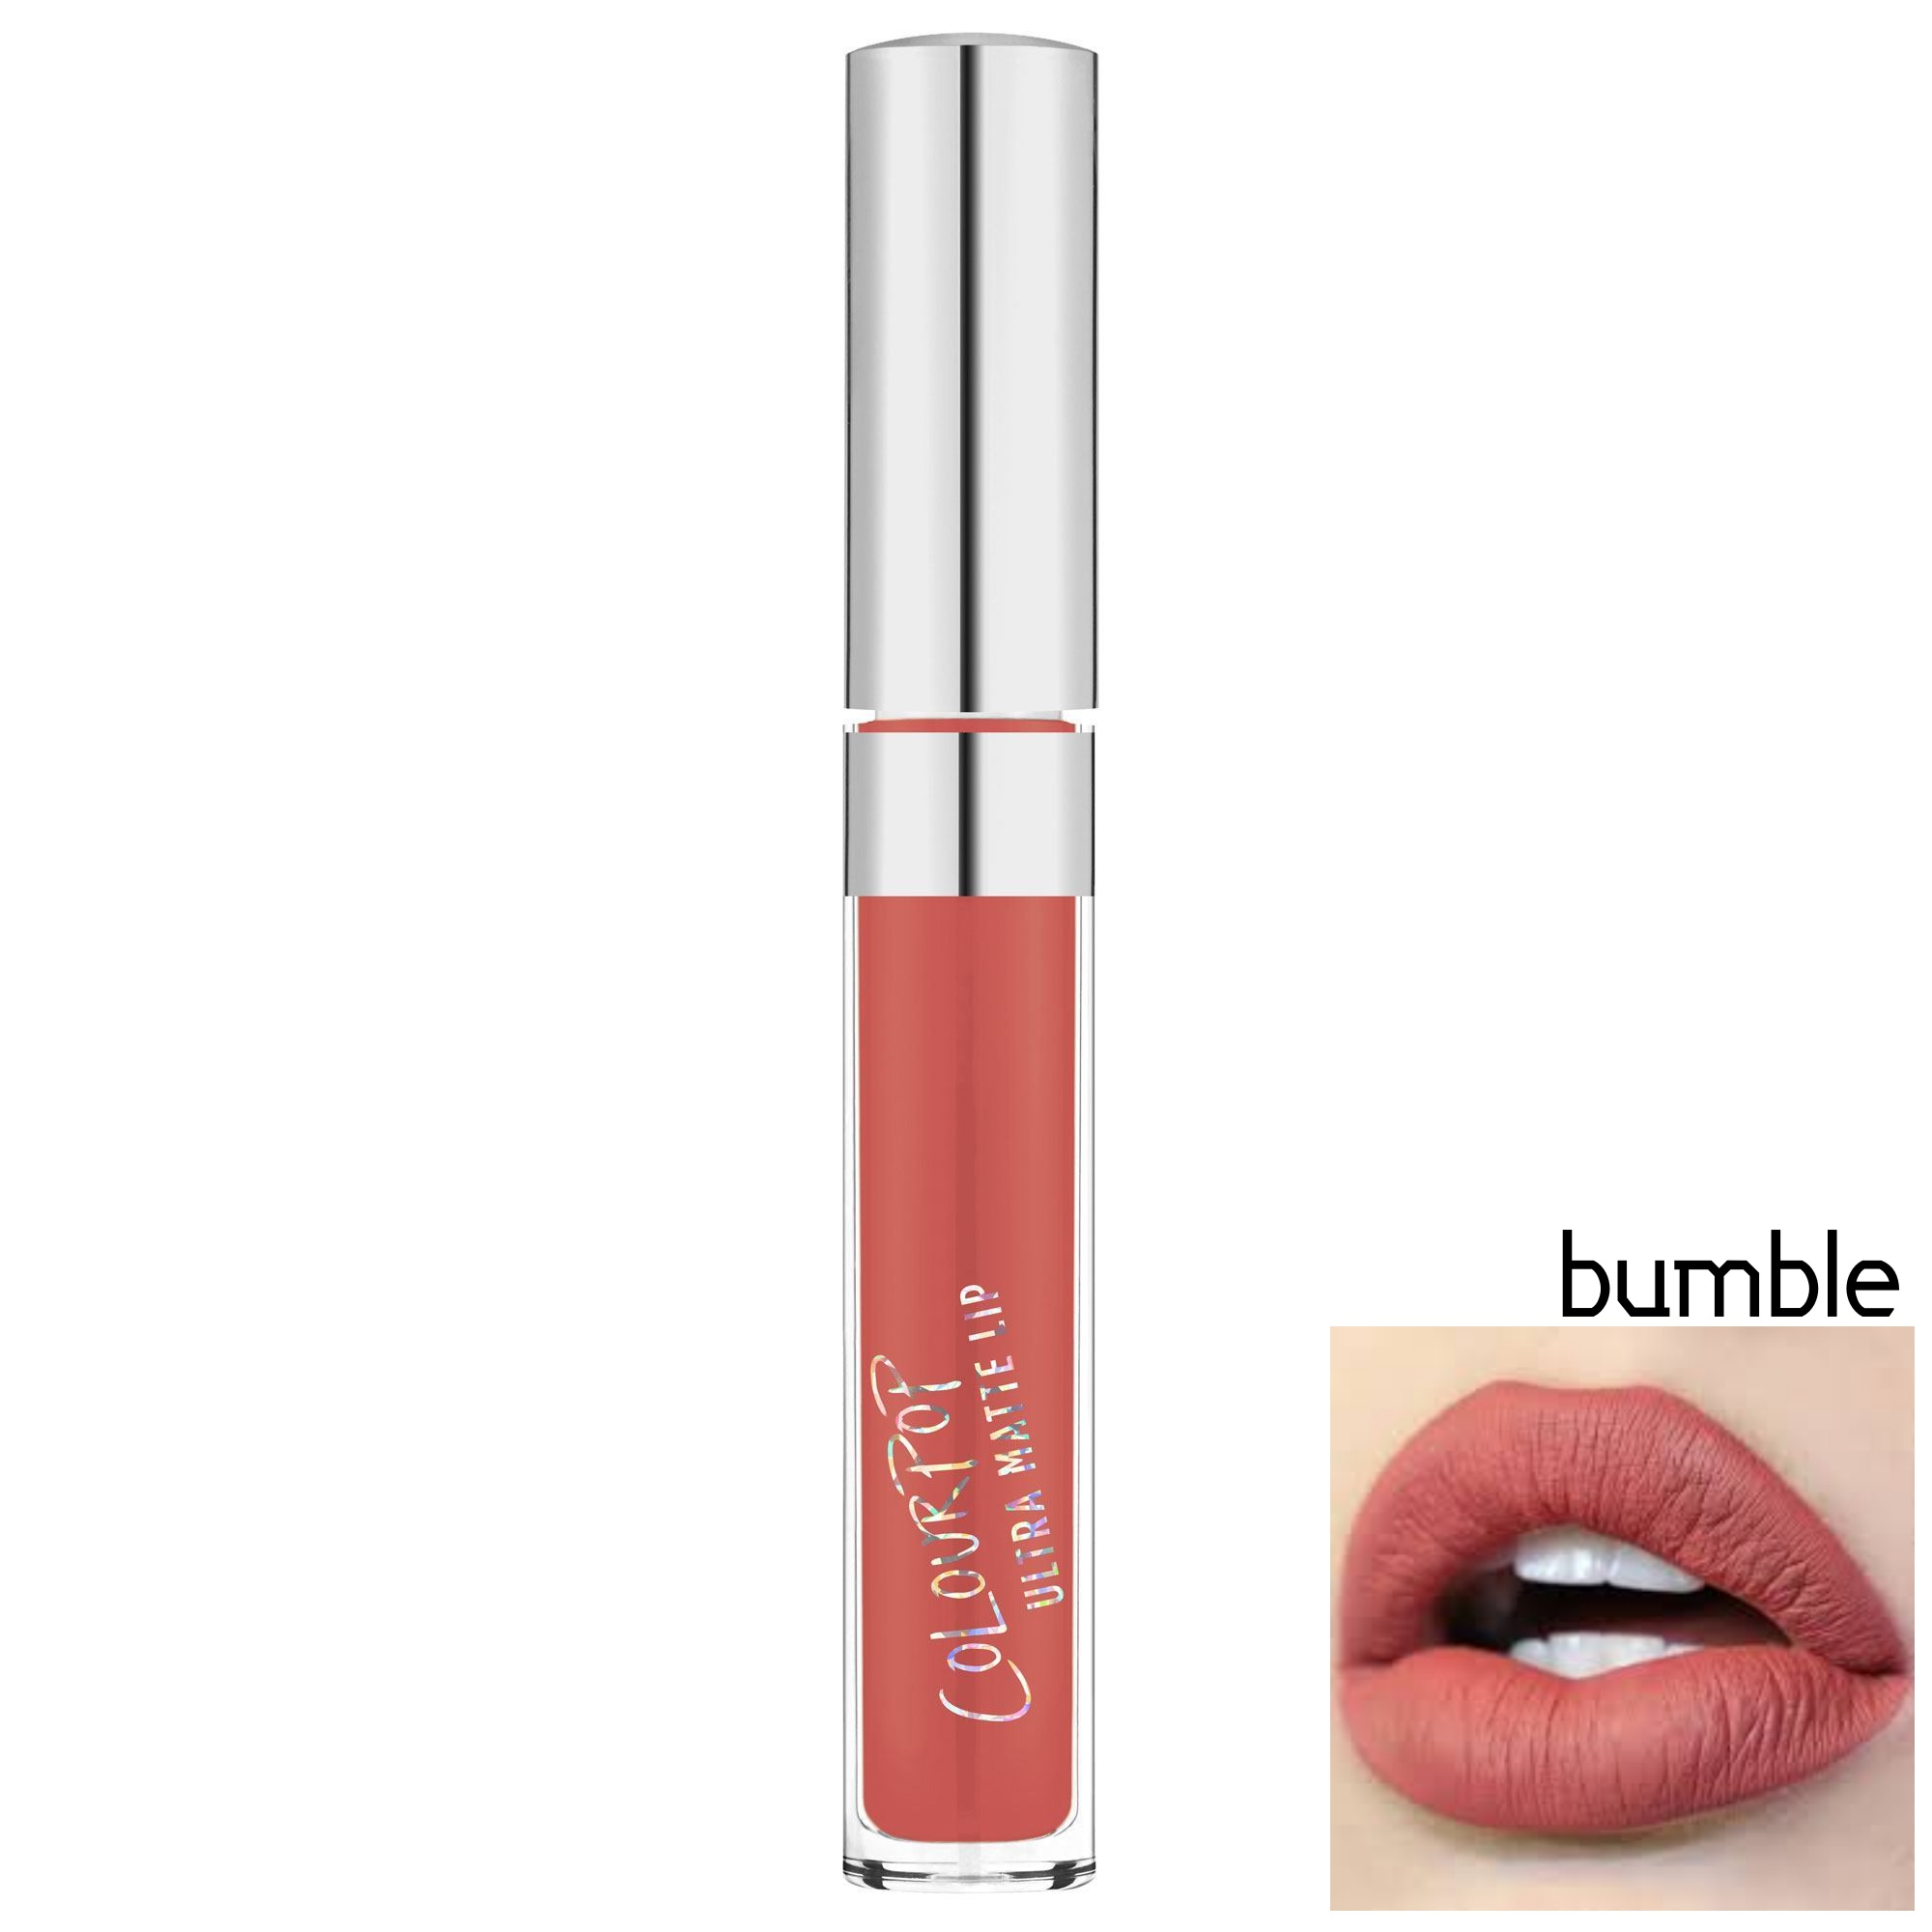 **พร้อมส่ง** + ลด 30 %COLOURPOP ULTRA SATIN LIQUID LIPSTICK สี Bumble